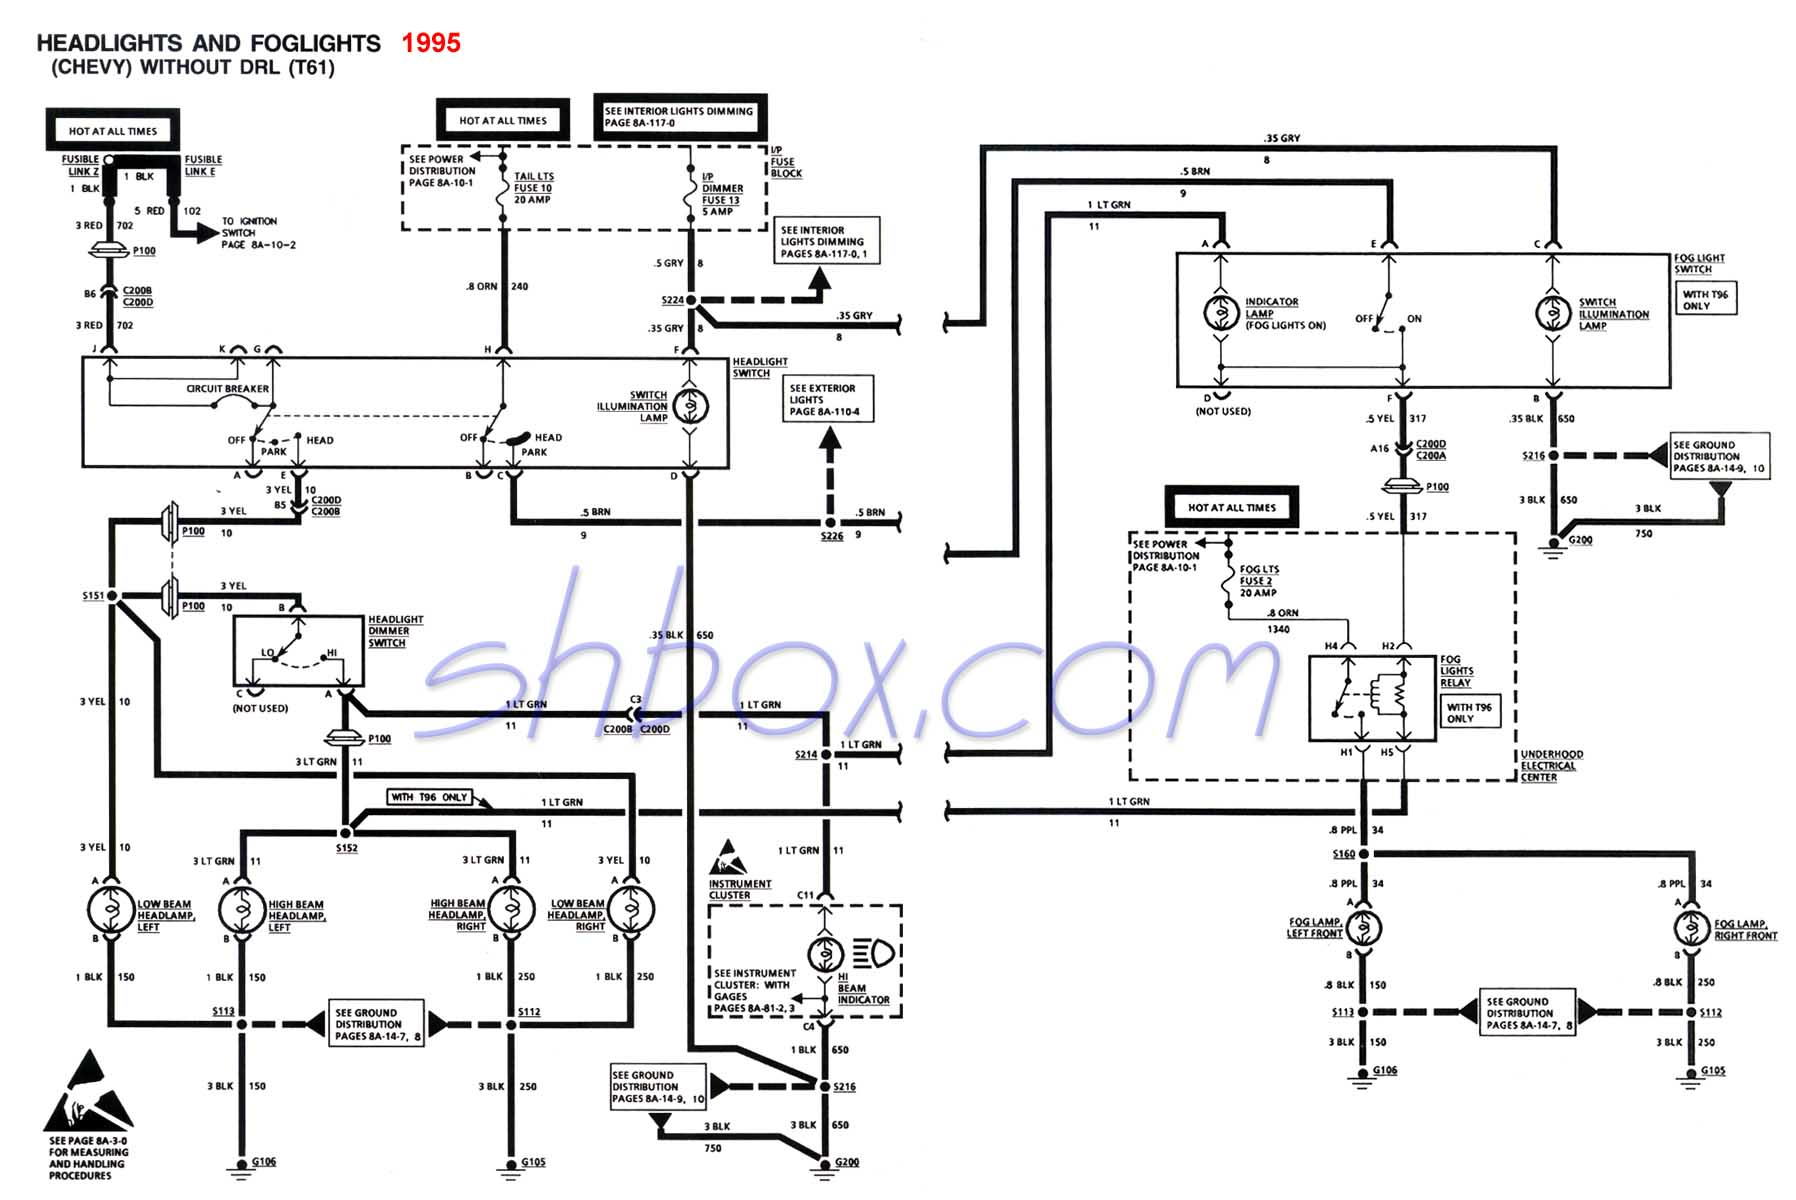 hight resolution of 4th gen lt1 f body tech aids 2000 toyota celica fuse box diagram 1995 camaro fuse diagram